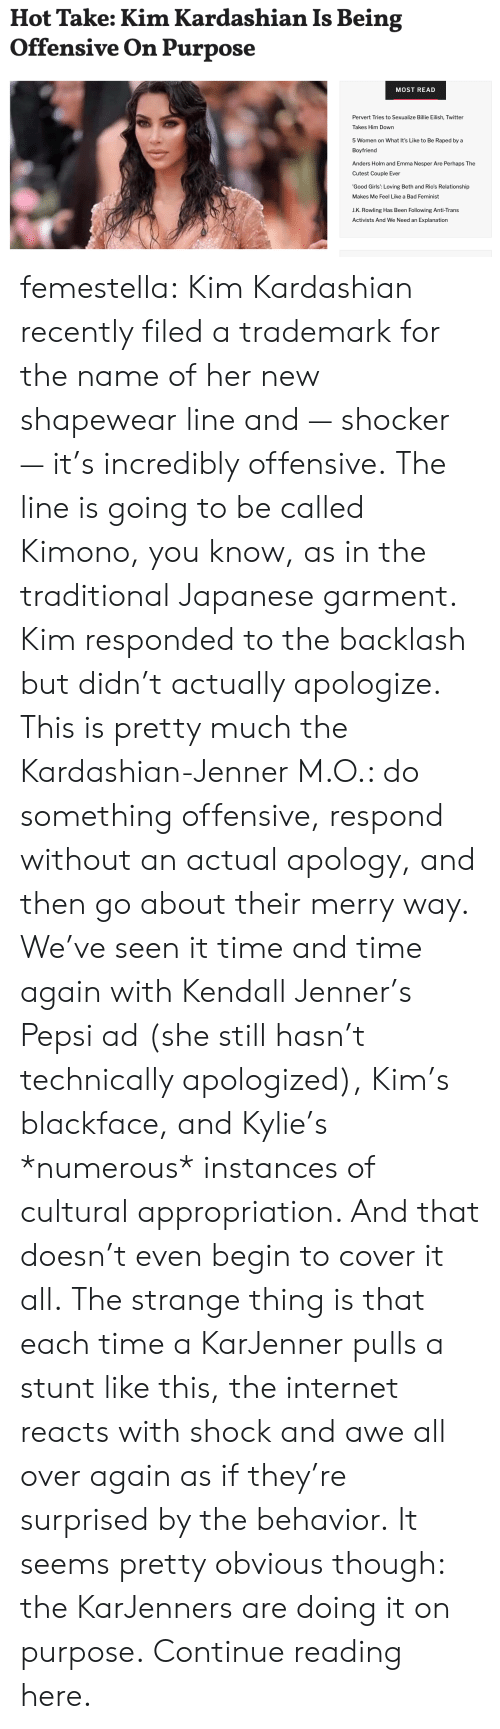 J K: Hot Take: Kim Kardashian Is Being  Offensive On Purpose  MOST READ  Pervert Tries to Sexualize Billie Eilish, Twitter  Takes Him Down  5 Women on What It's Like to Be Raped by a  Boyfriend  Anders Holm and Emma Nesper Are Perhaps The  Cutest Couple Ever  'Good Girls': Loving Beth and Rio's Relationship  Makes Me Feel Like a Bad Feminist  J.K. Rowling Has Been Following Anti-Trans  Activists And We Need an Explanation femestella: Kim Kardashian recently filed a trademark for the name of her new shapewear line and — shocker — it's incredibly offensive. The line is going to be called Kimono, you know, as in the traditional Japanese garment.  Kim responded to the backlash but didn't actually apologize. This is pretty much the Kardashian-Jenner M.O.: do something offensive, respond without an actual apology, and then go about their merry way. We've seen it time and time again with Kendall Jenner's Pepsi ad (she still hasn't technically apologized), Kim's blackface, and Kylie's *numerous* instances of cultural appropriation. And that doesn't even begin to cover it all. The strange thing is that each time a KarJenner pulls a stunt like this, the internet reacts with shock and awe all over again as if they're surprised by the behavior. It seems pretty obvious though: the KarJenners are doing it on purpose. Continue reading here.